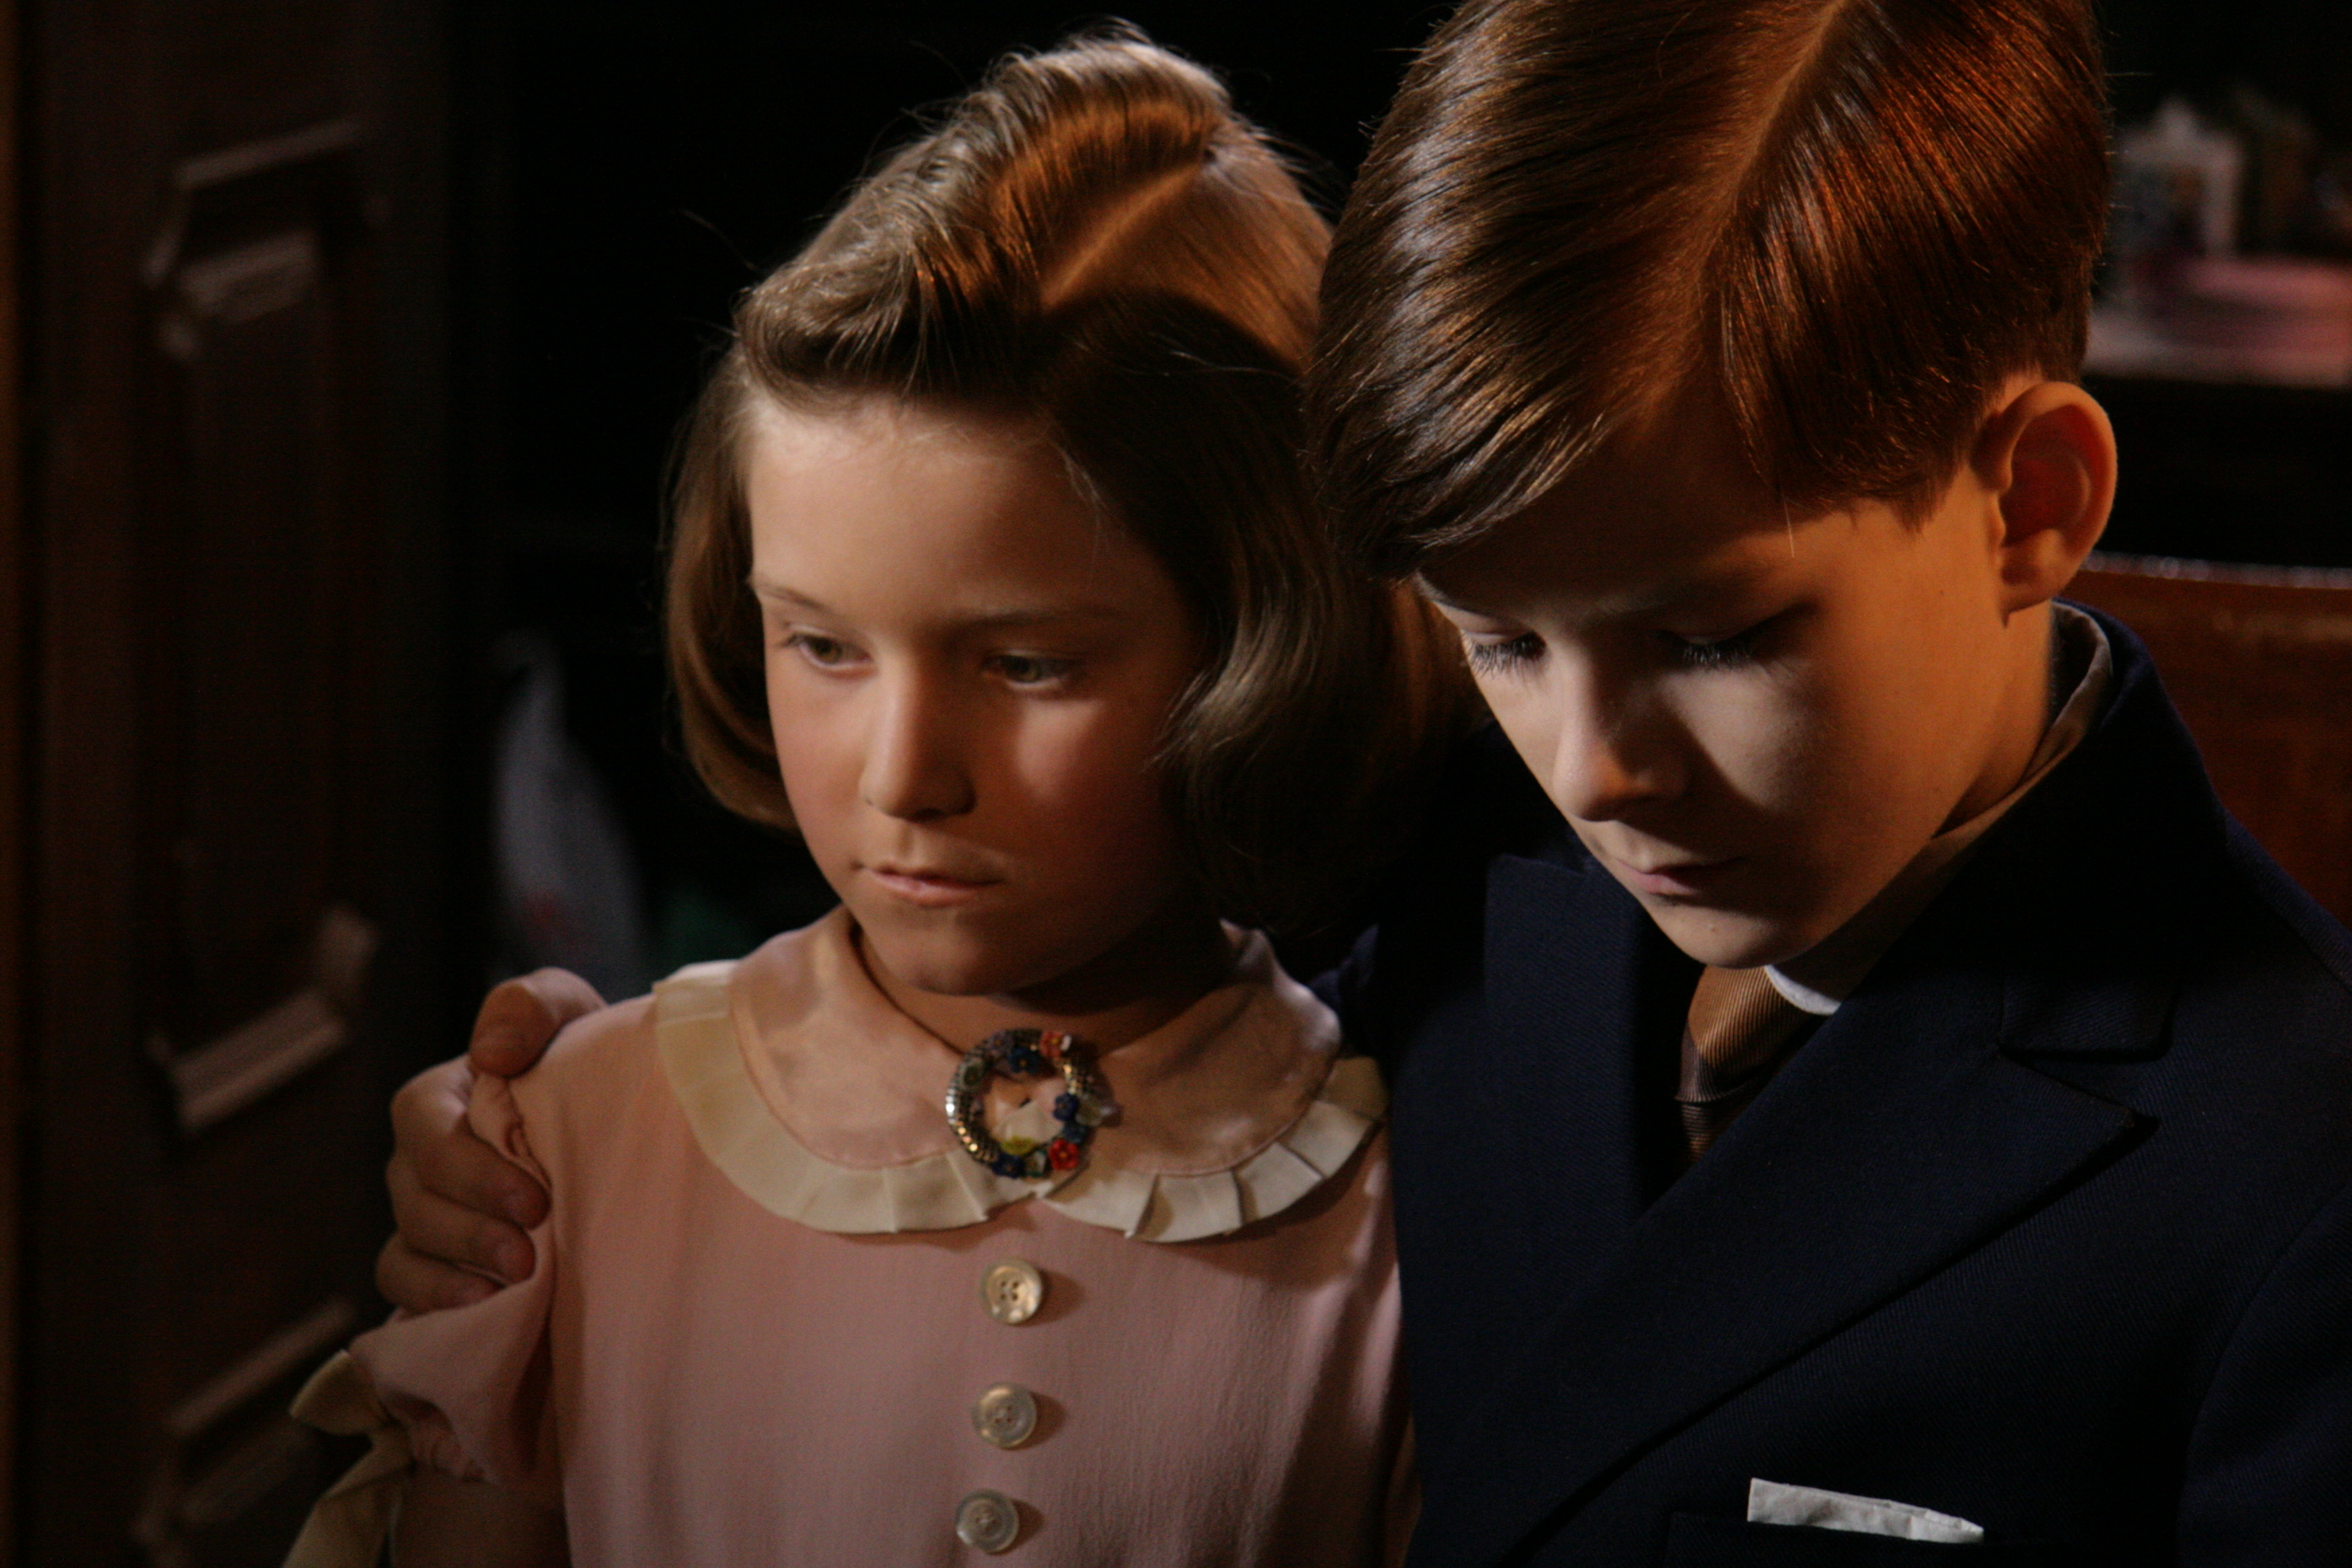 Film still of Hana Brady and her brother